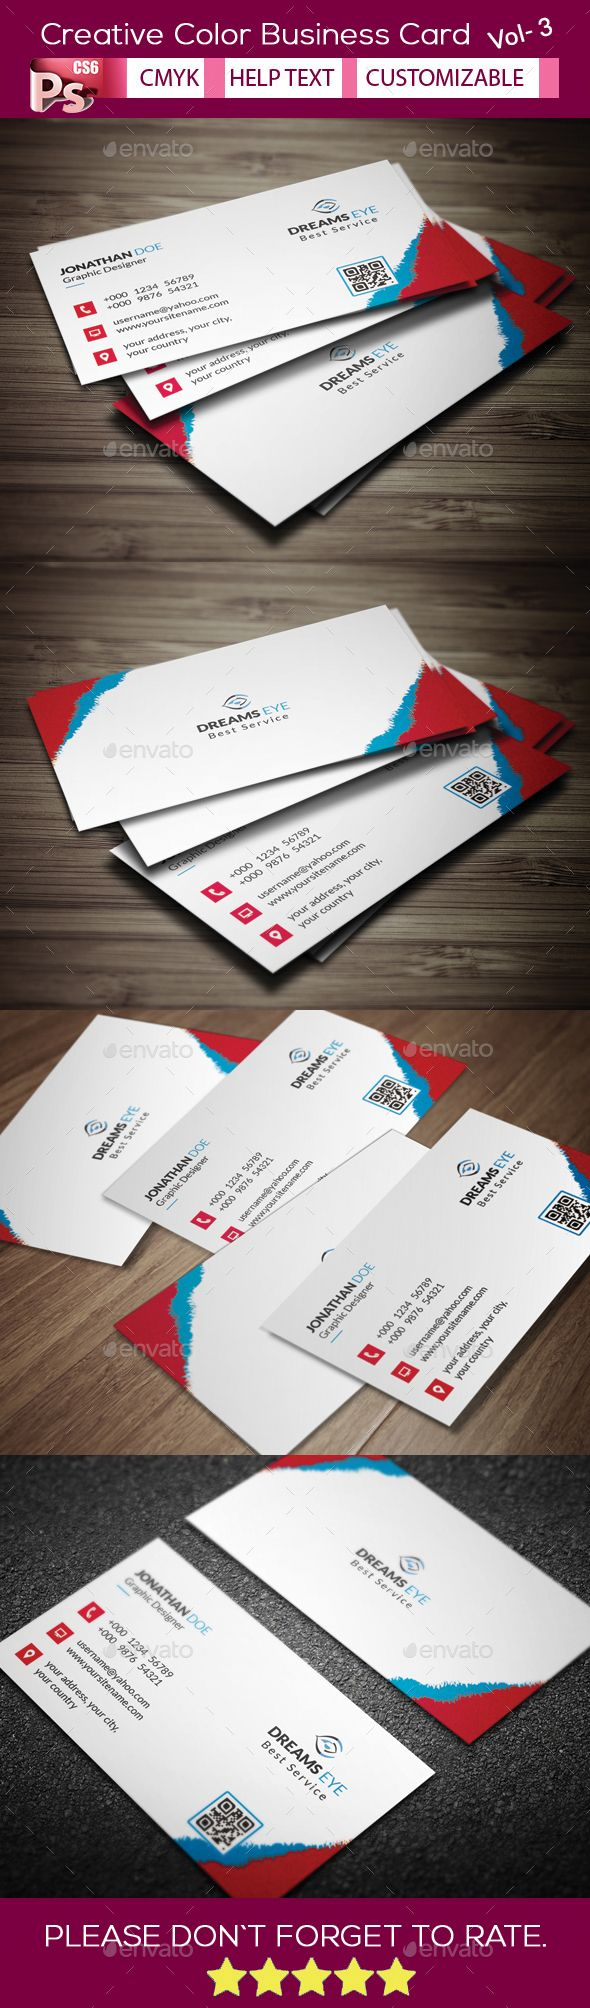 Creative Color Business Card V.3 | Business Card Template Design ...